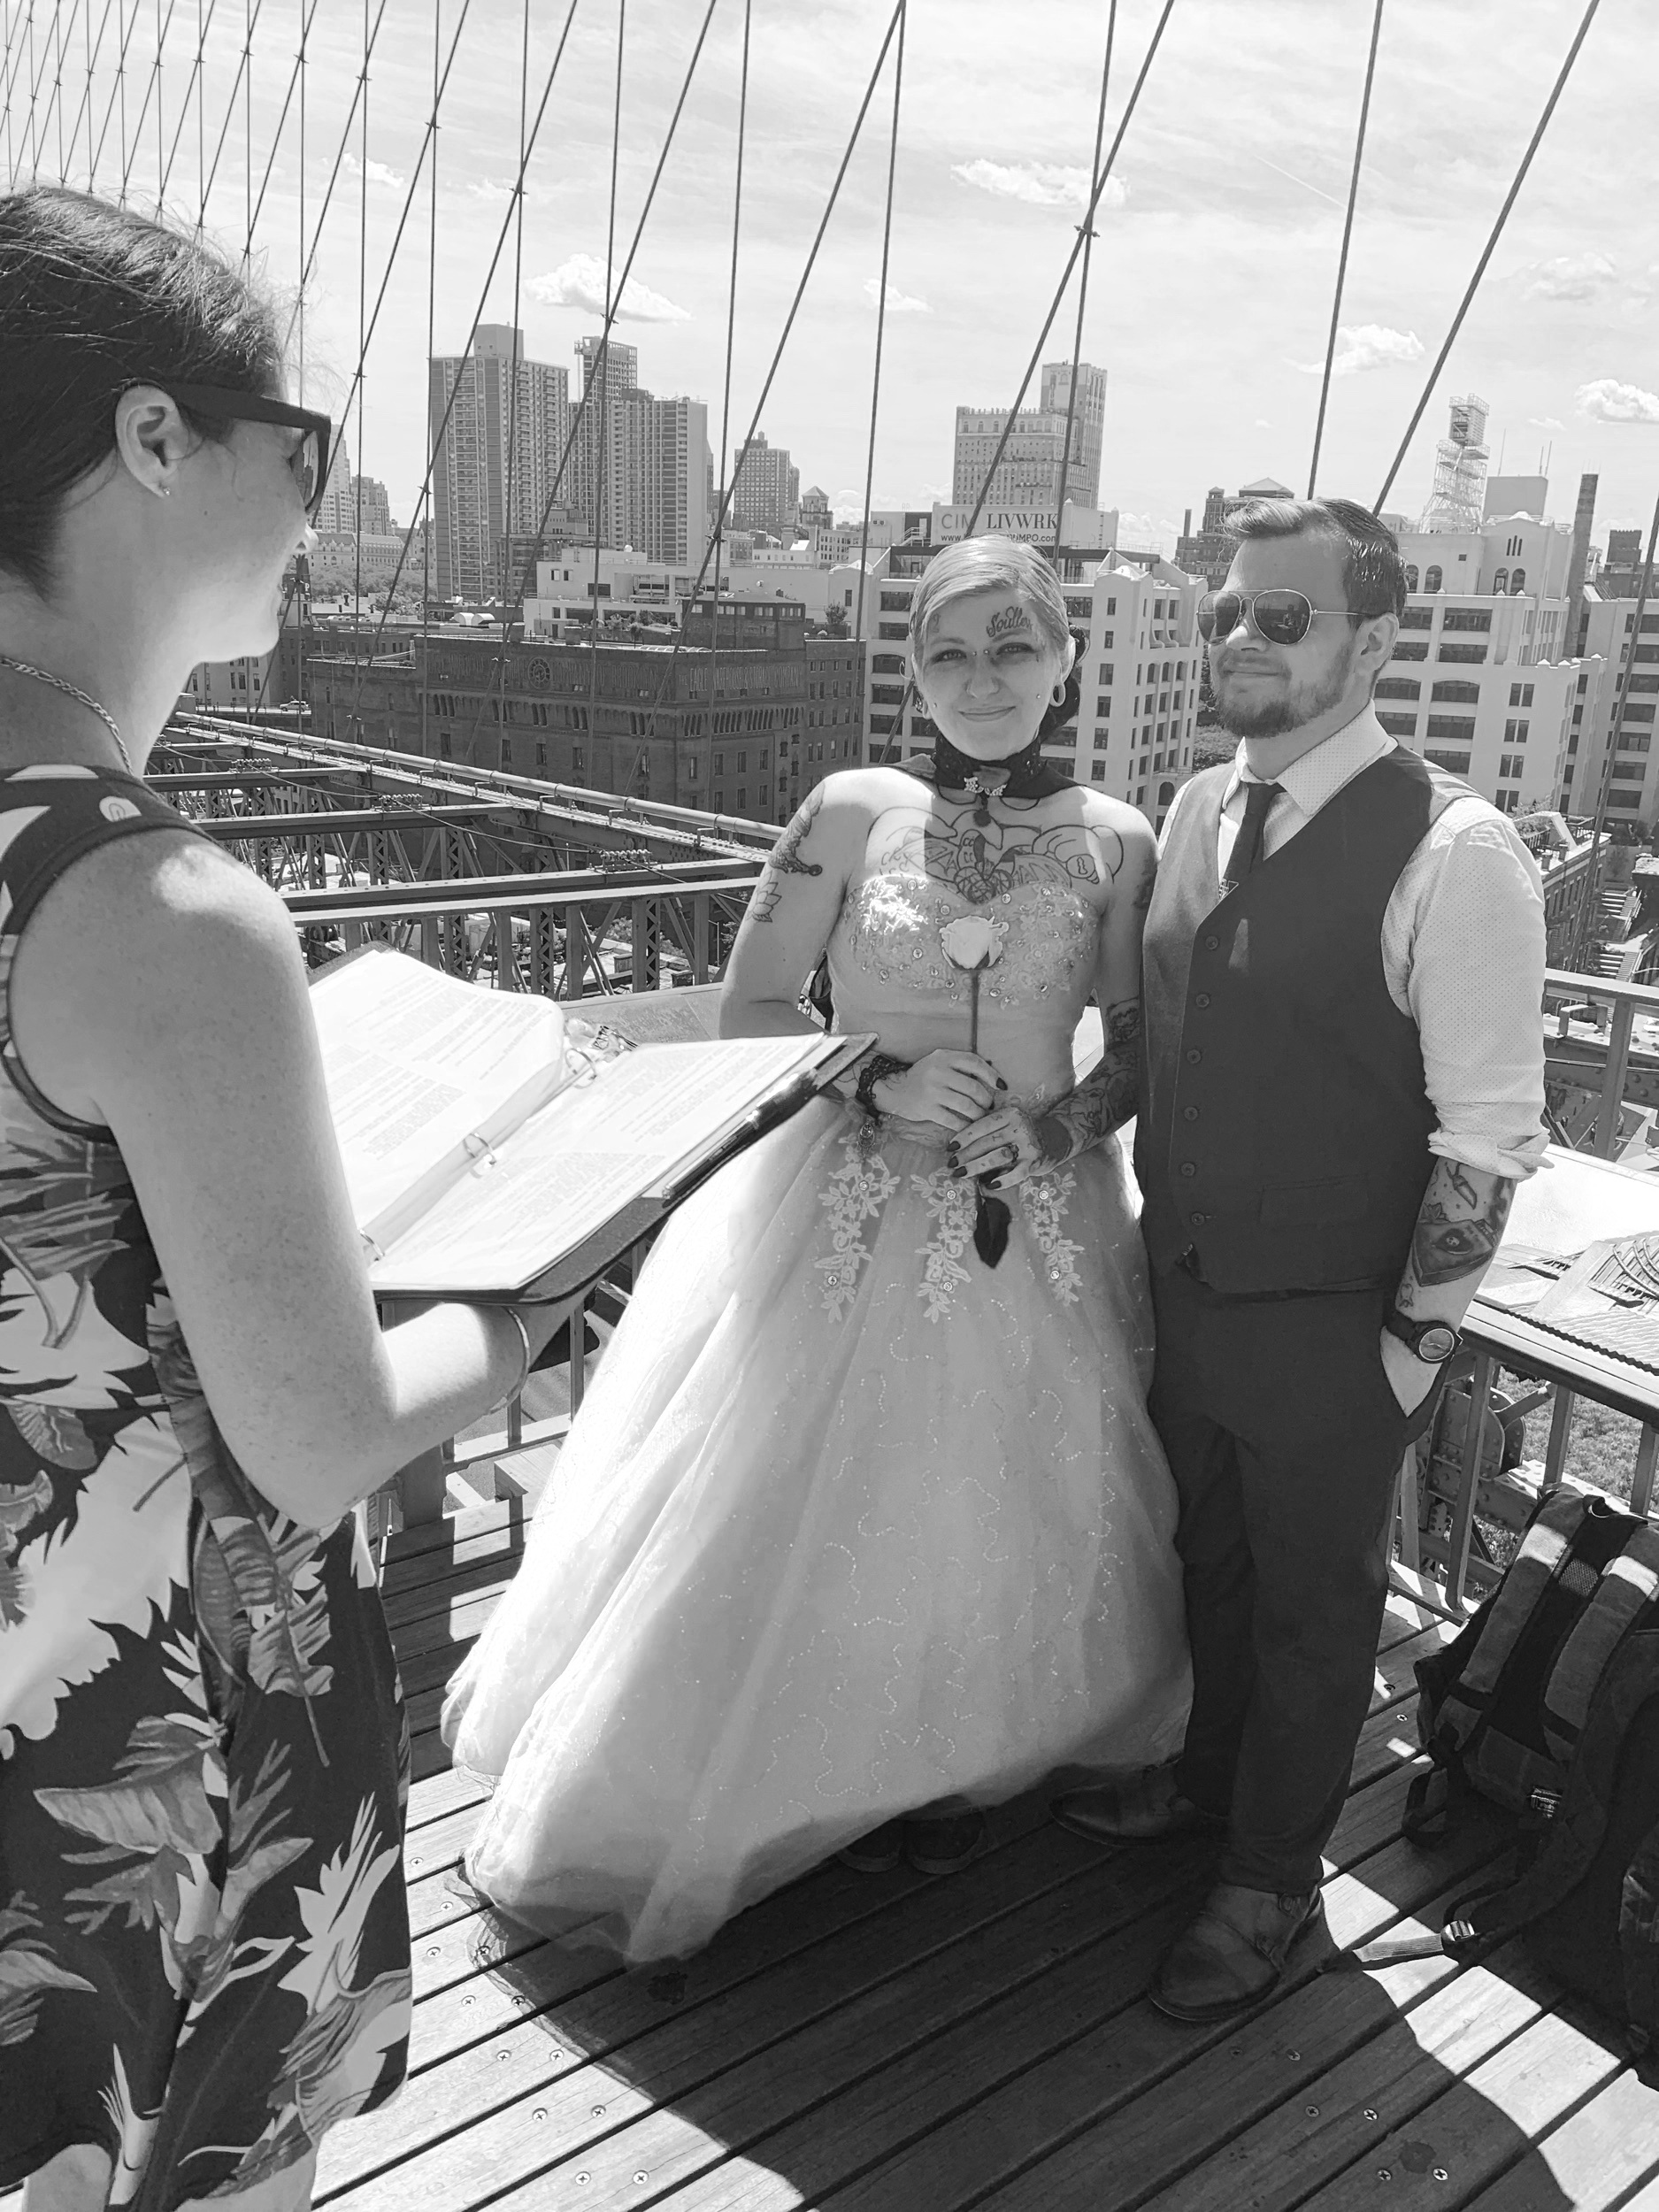 Uniting a couple in marriage on the Brooklyn Bridge.